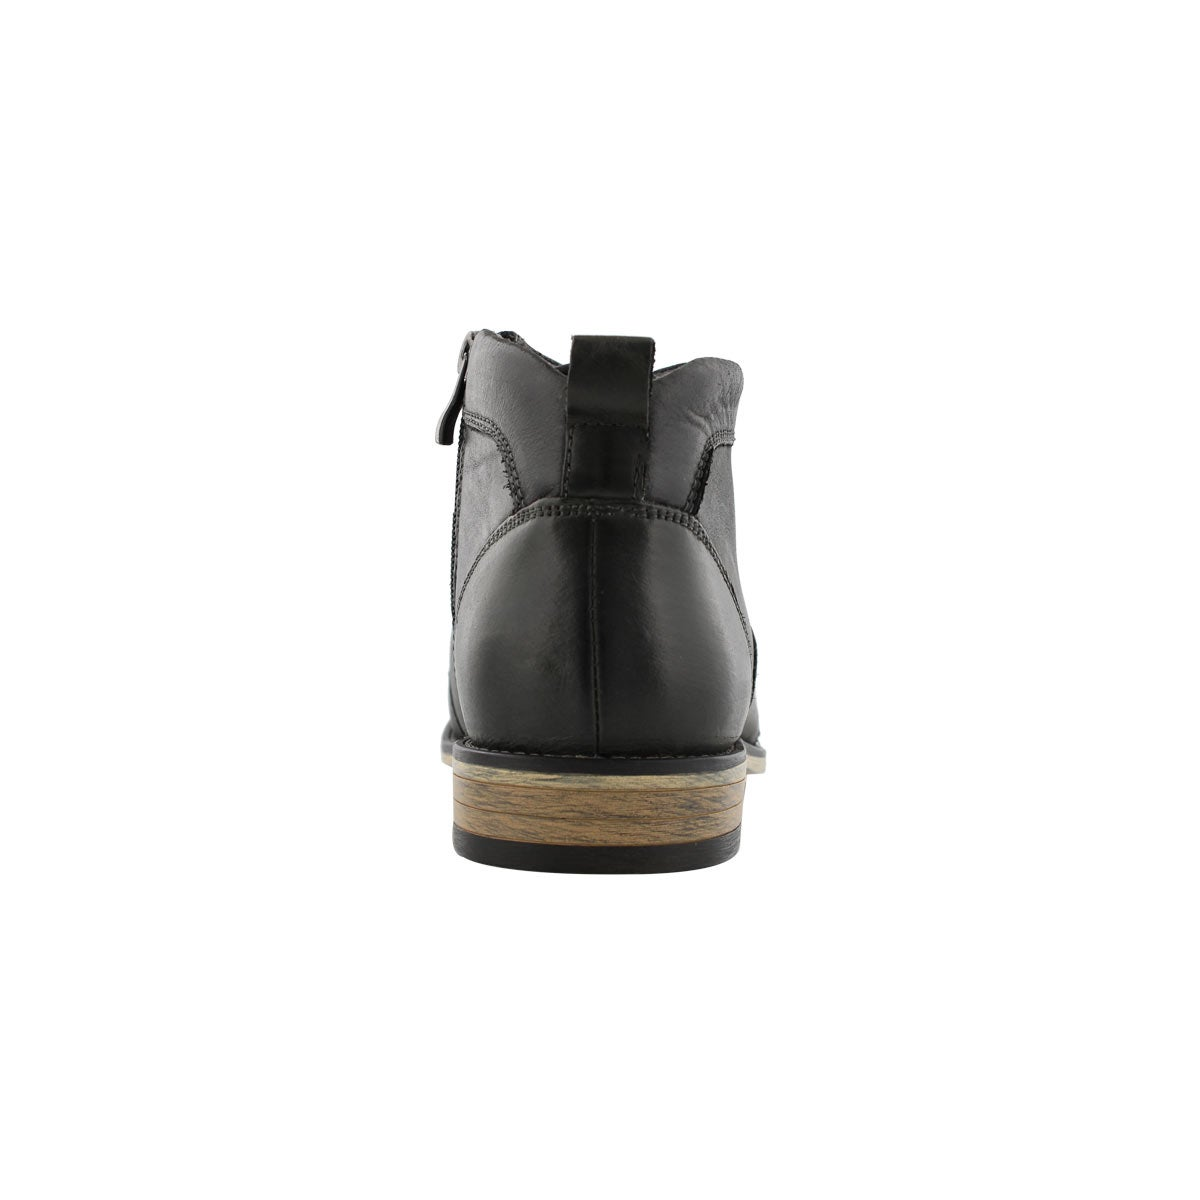 Mns Johnny black laceup ankle boot